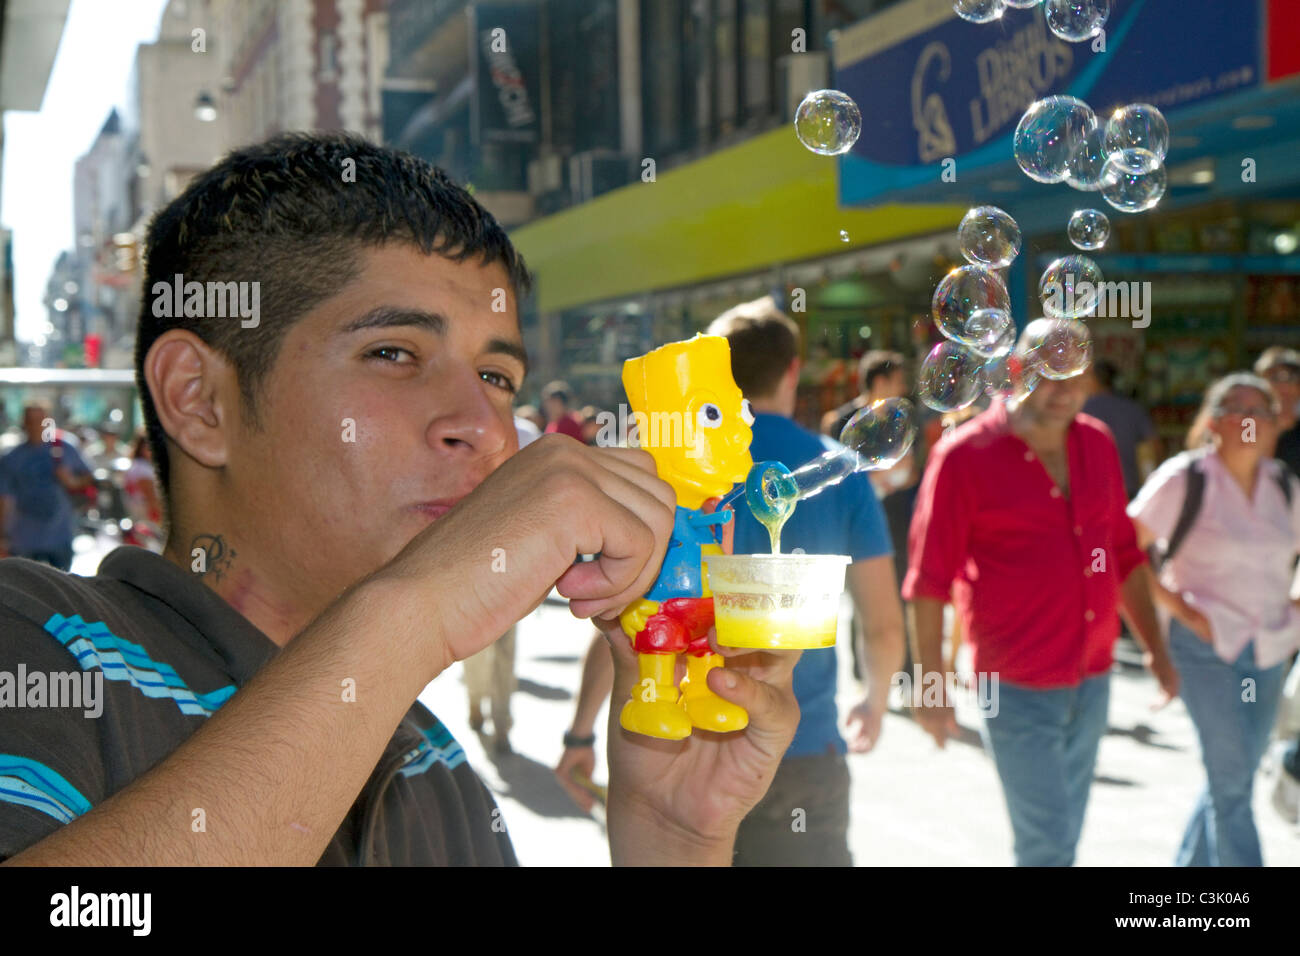 Argentine man blowing bubbles with a Bart Simpson toy along Florida Street in the Retiro barrio of Buenos Aires, - Stock Image